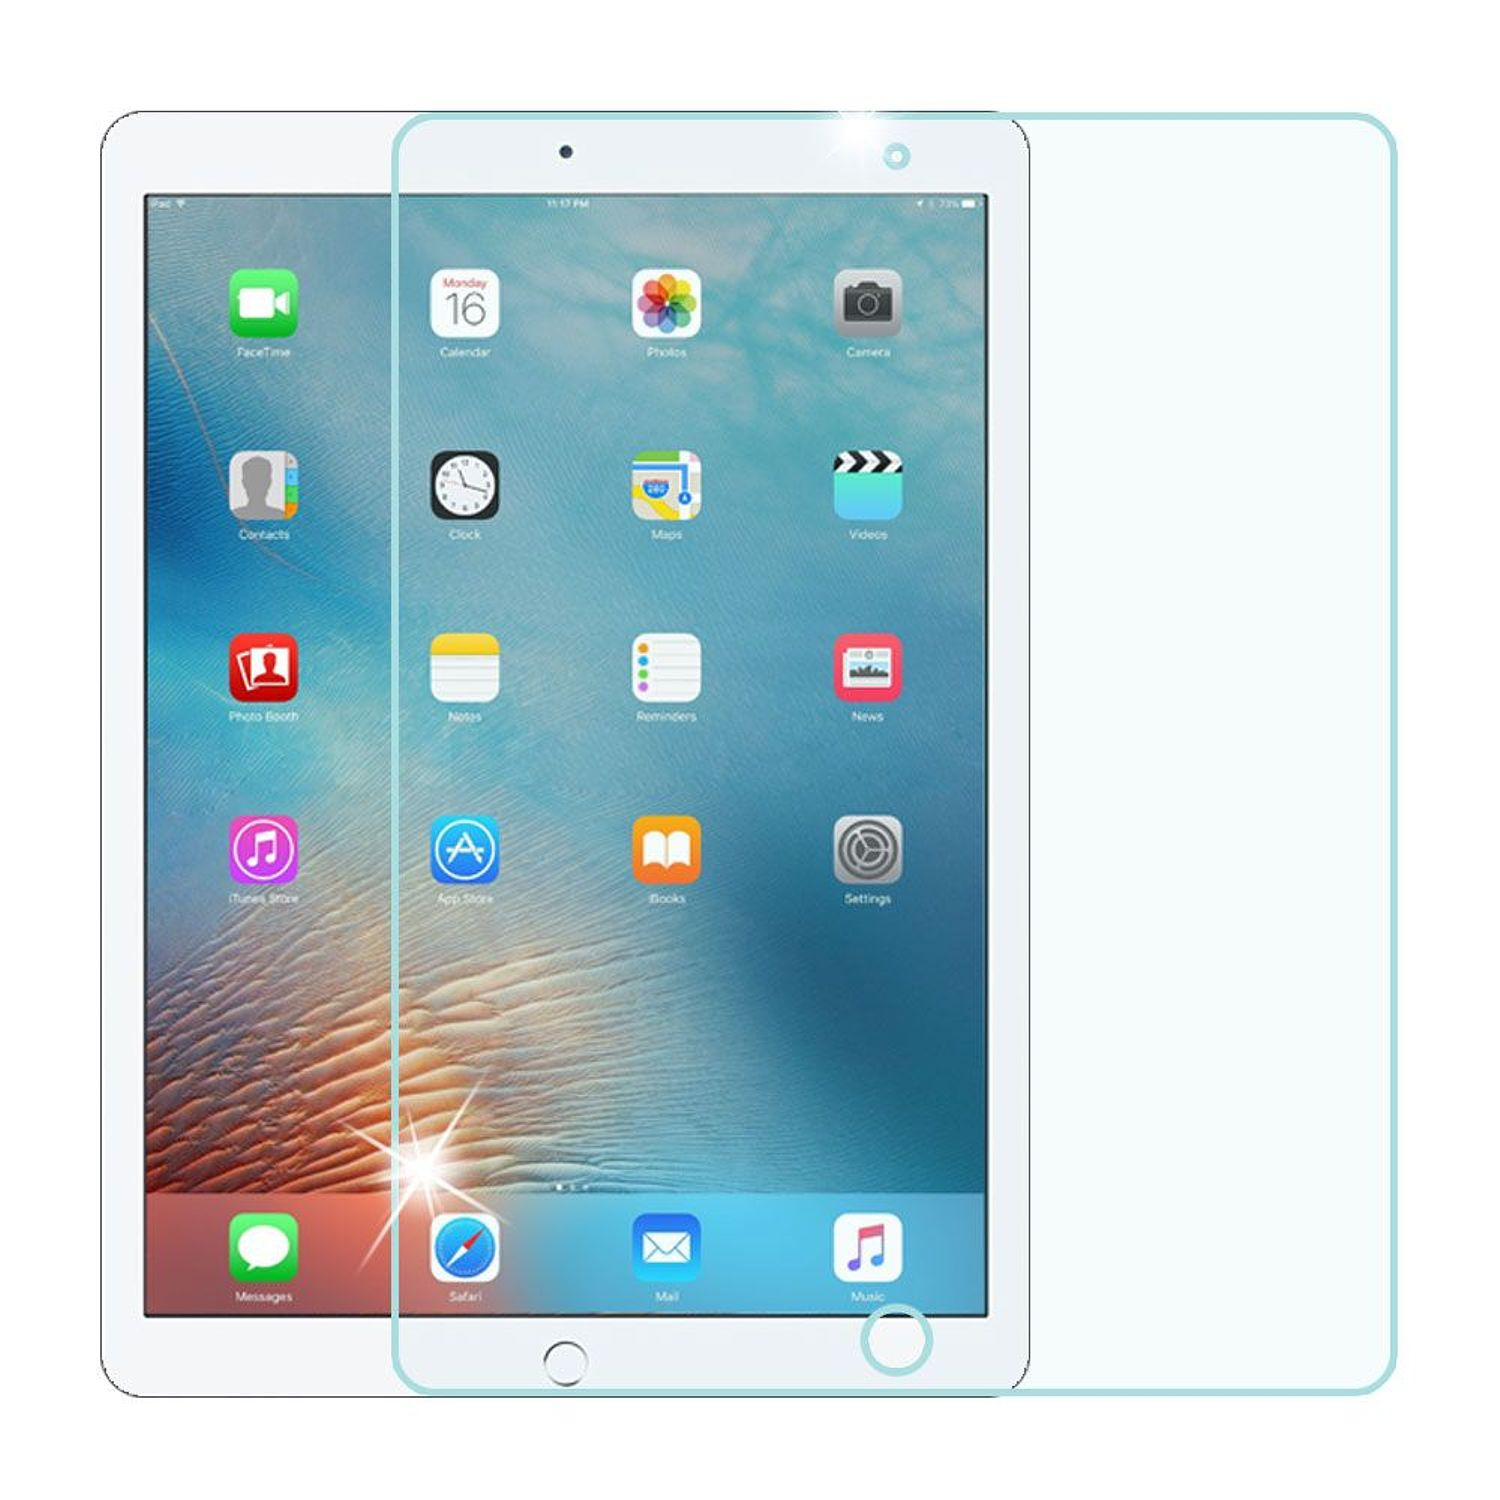 Apple iPad Pro 12.9 Screen Protector, by Insten Clear 9H Hardness Tempered Glass LCD Screen Protector Film Cover For Apple iPad Pro 12.9""